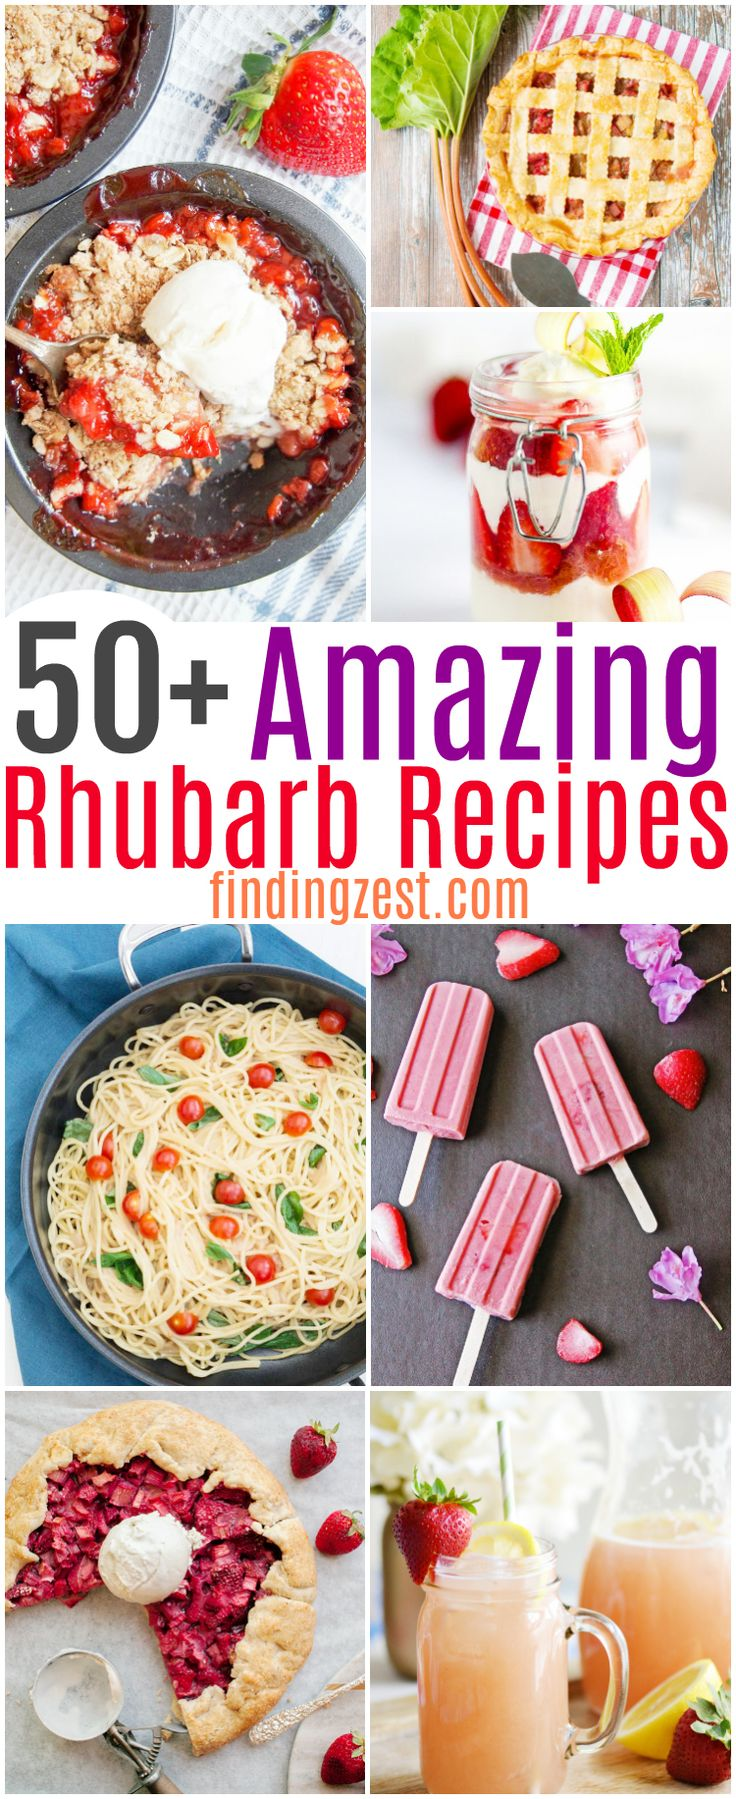 Not sure what to do with all that rhubarb you harvest? Get over 50 rhubarb recipes worth making during rhubarb season! These are the the best rhubarb recipes. From classic rhubarb desserts to healthy rhubarb recipes, this list has everything you need to use up that rhubarb! #rhubarb #recipes #foodie #dessertrecipes #dessert #baking #cooking #dessert